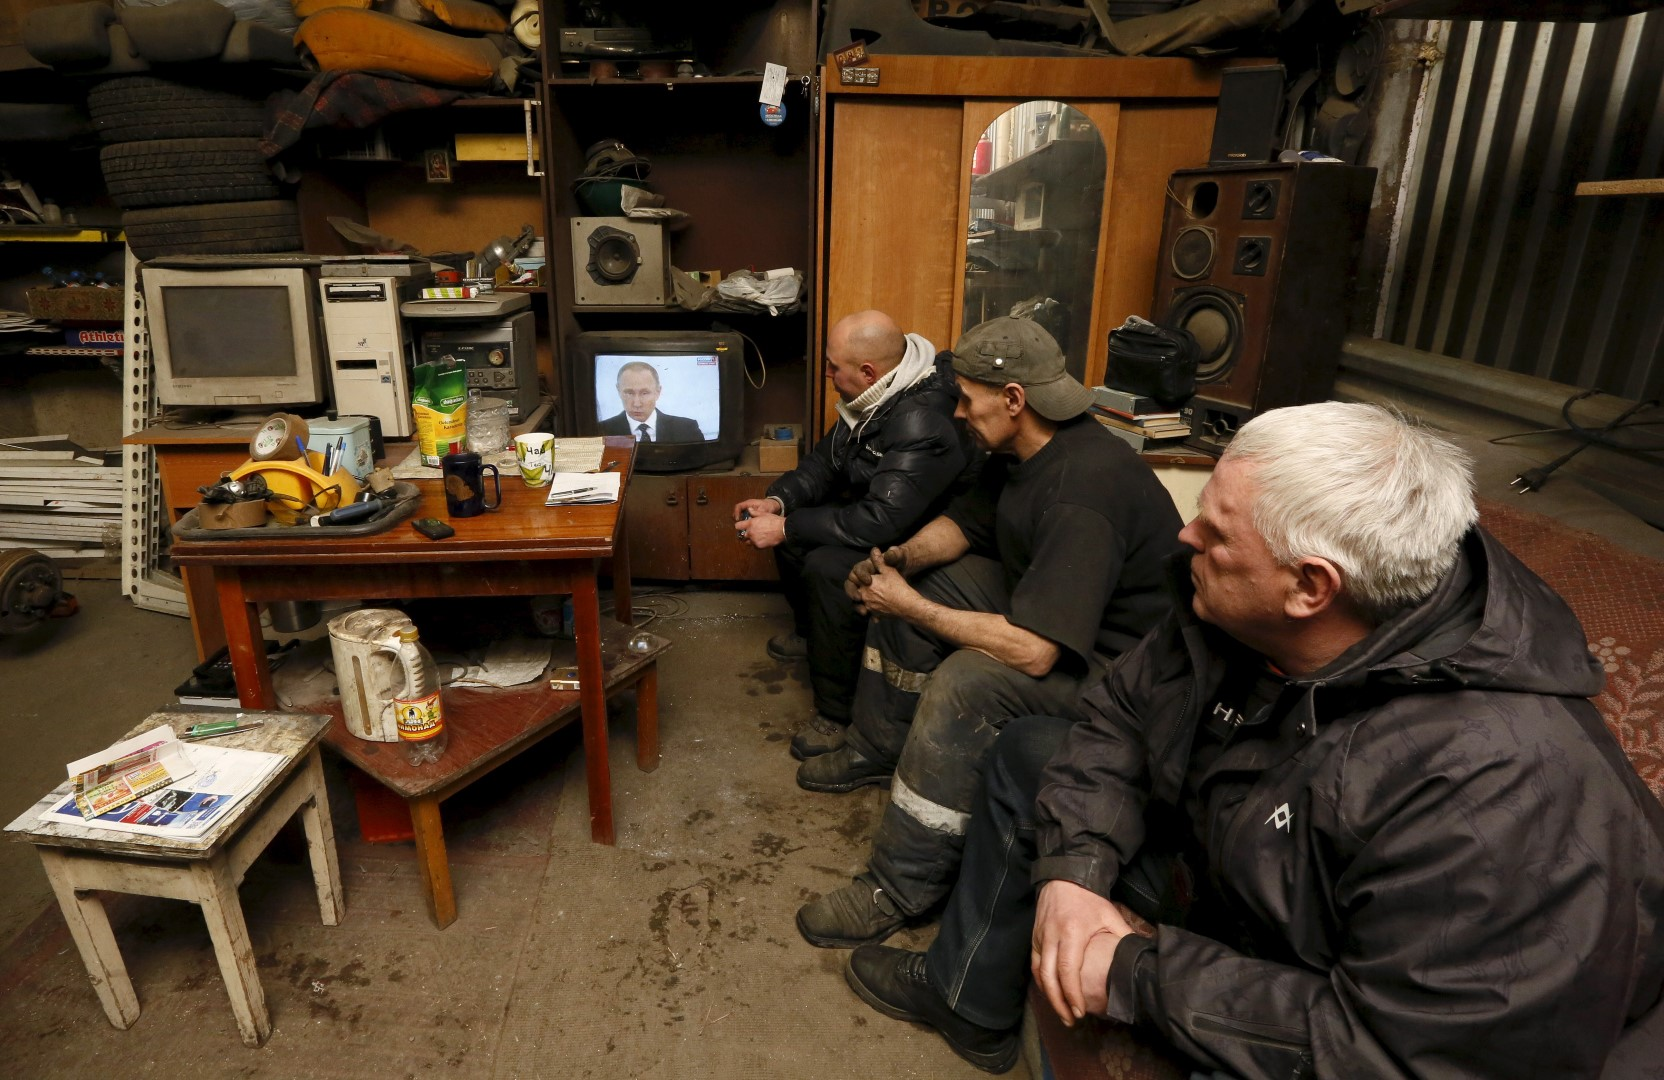 Workers watch a television broadcast of Russian President Vladimir Putin address to the Federal Assembly at an auto repair shop in the Siberian town of Divnogorsk near Krasnoyarsk, Russia, December 3, 2015. Putin used his annual state of the nation speech on Thursday to warn Turkey the Kremlin planned to adopt further sanctions against it to punish Ankara for shooting down a Russian warplane near the Syrian-Turkish border last week. REUTERS/Ilya Naymushin - GF20000083478